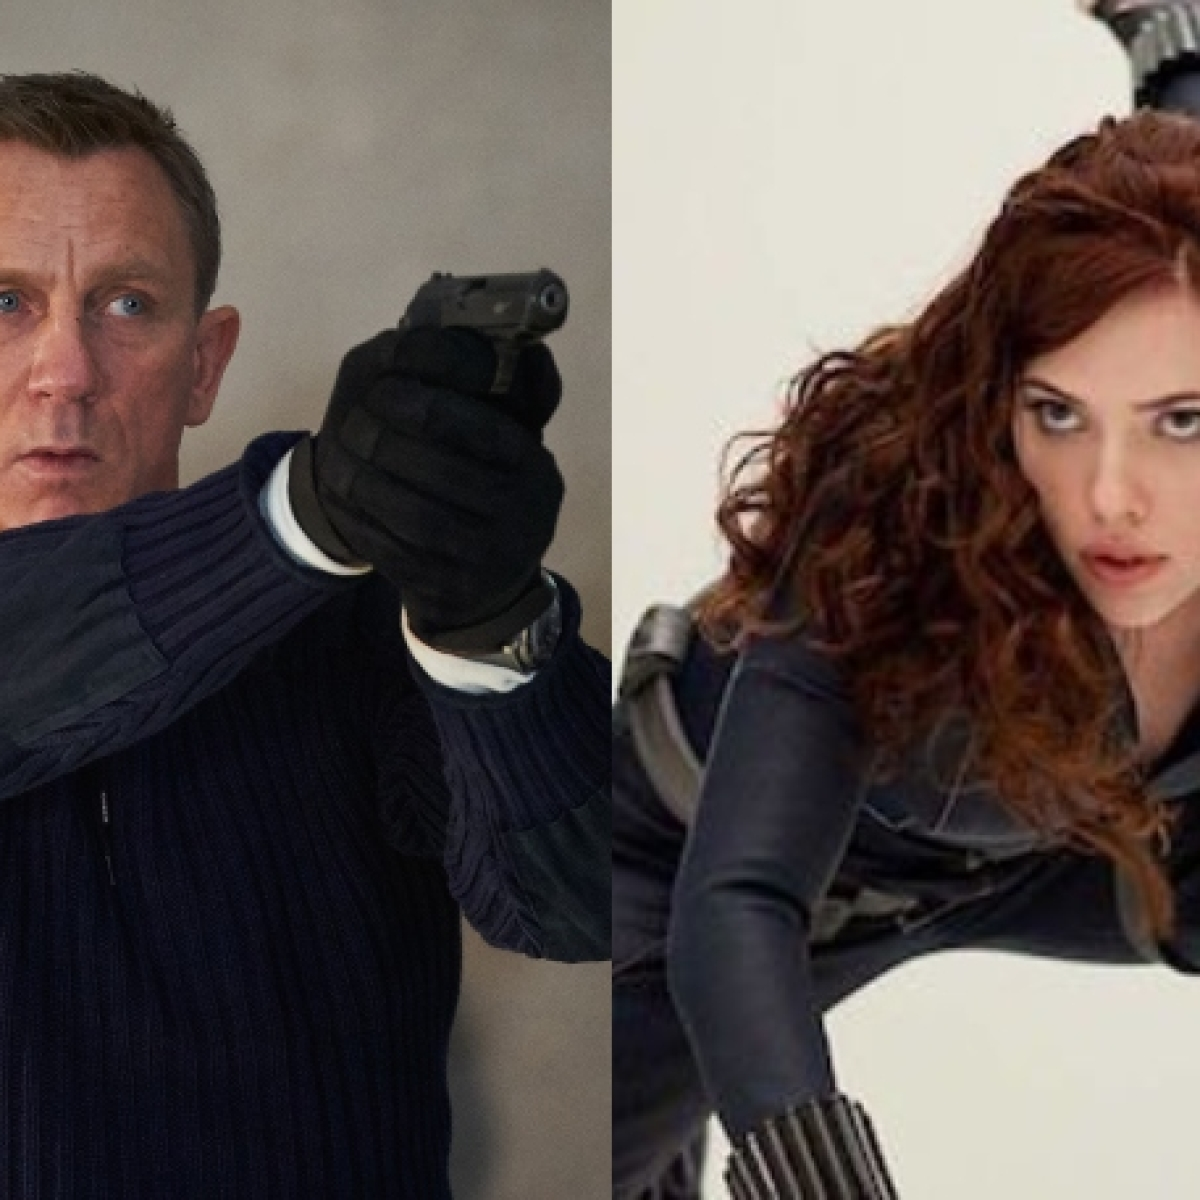 From Daniel Craig's 'No Time To Die' to Scarlett Johansson's 'Black Widow': Hollywood movies to look out for in 2021